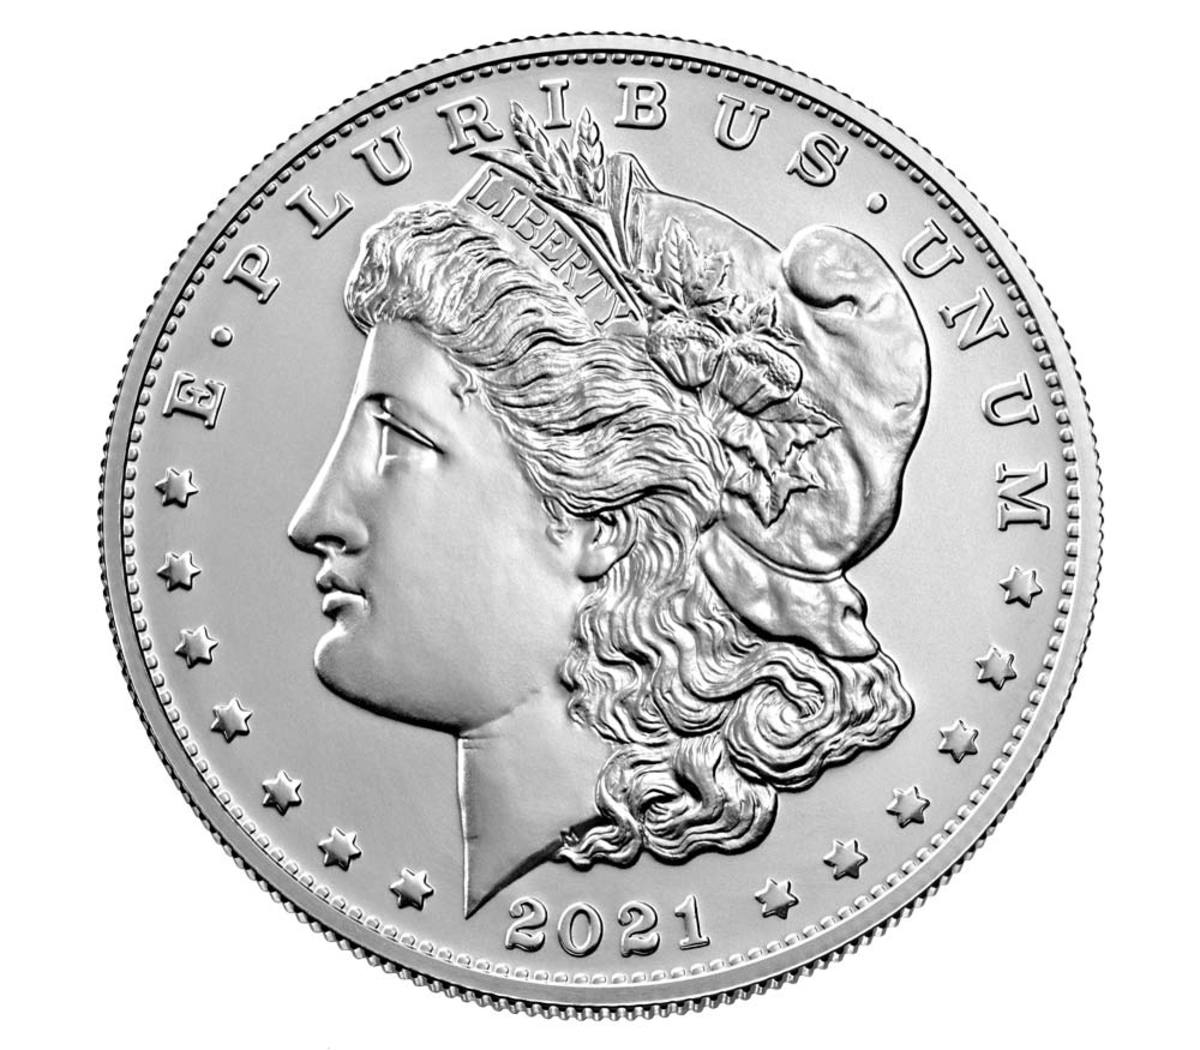 """Obverse of 2021 silver Morgan dollar with """"CC"""" privy mark, genuine example. (Image courtesy United States Mint.)"""